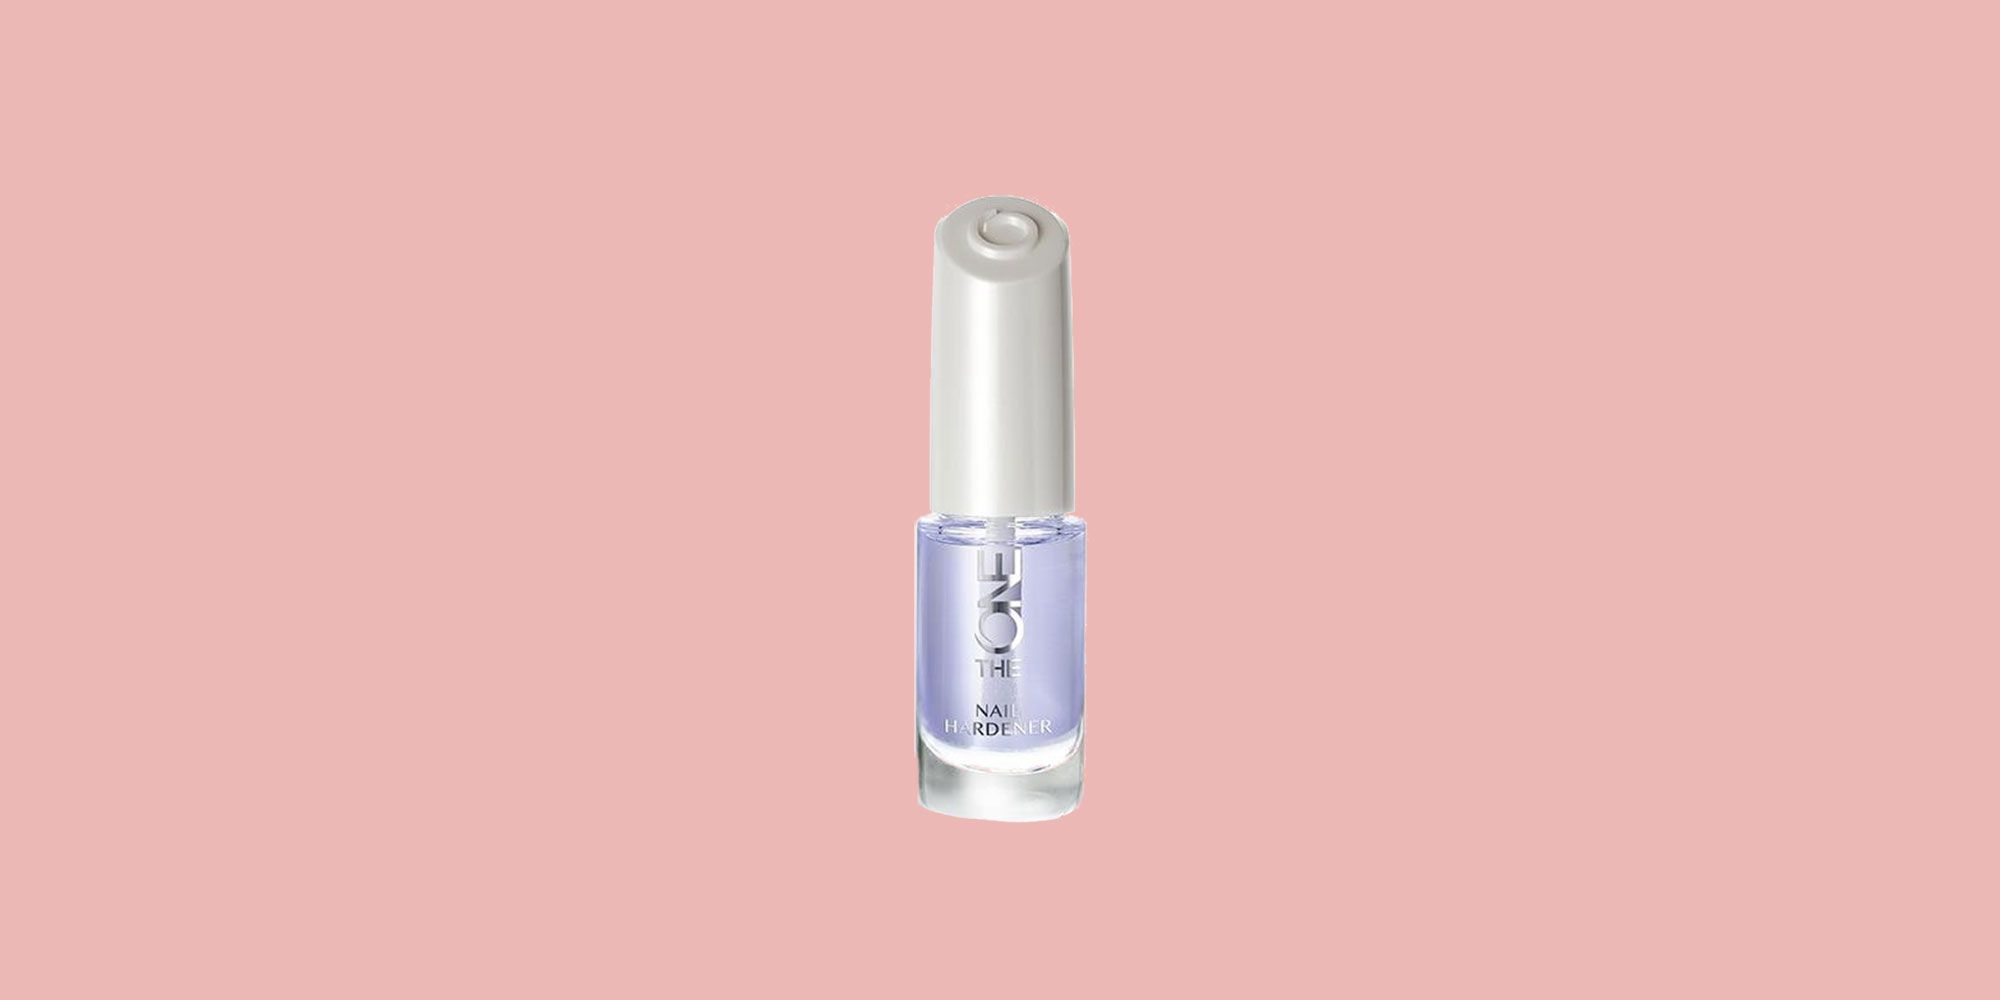 Oriflame The ONE Nail Hardener